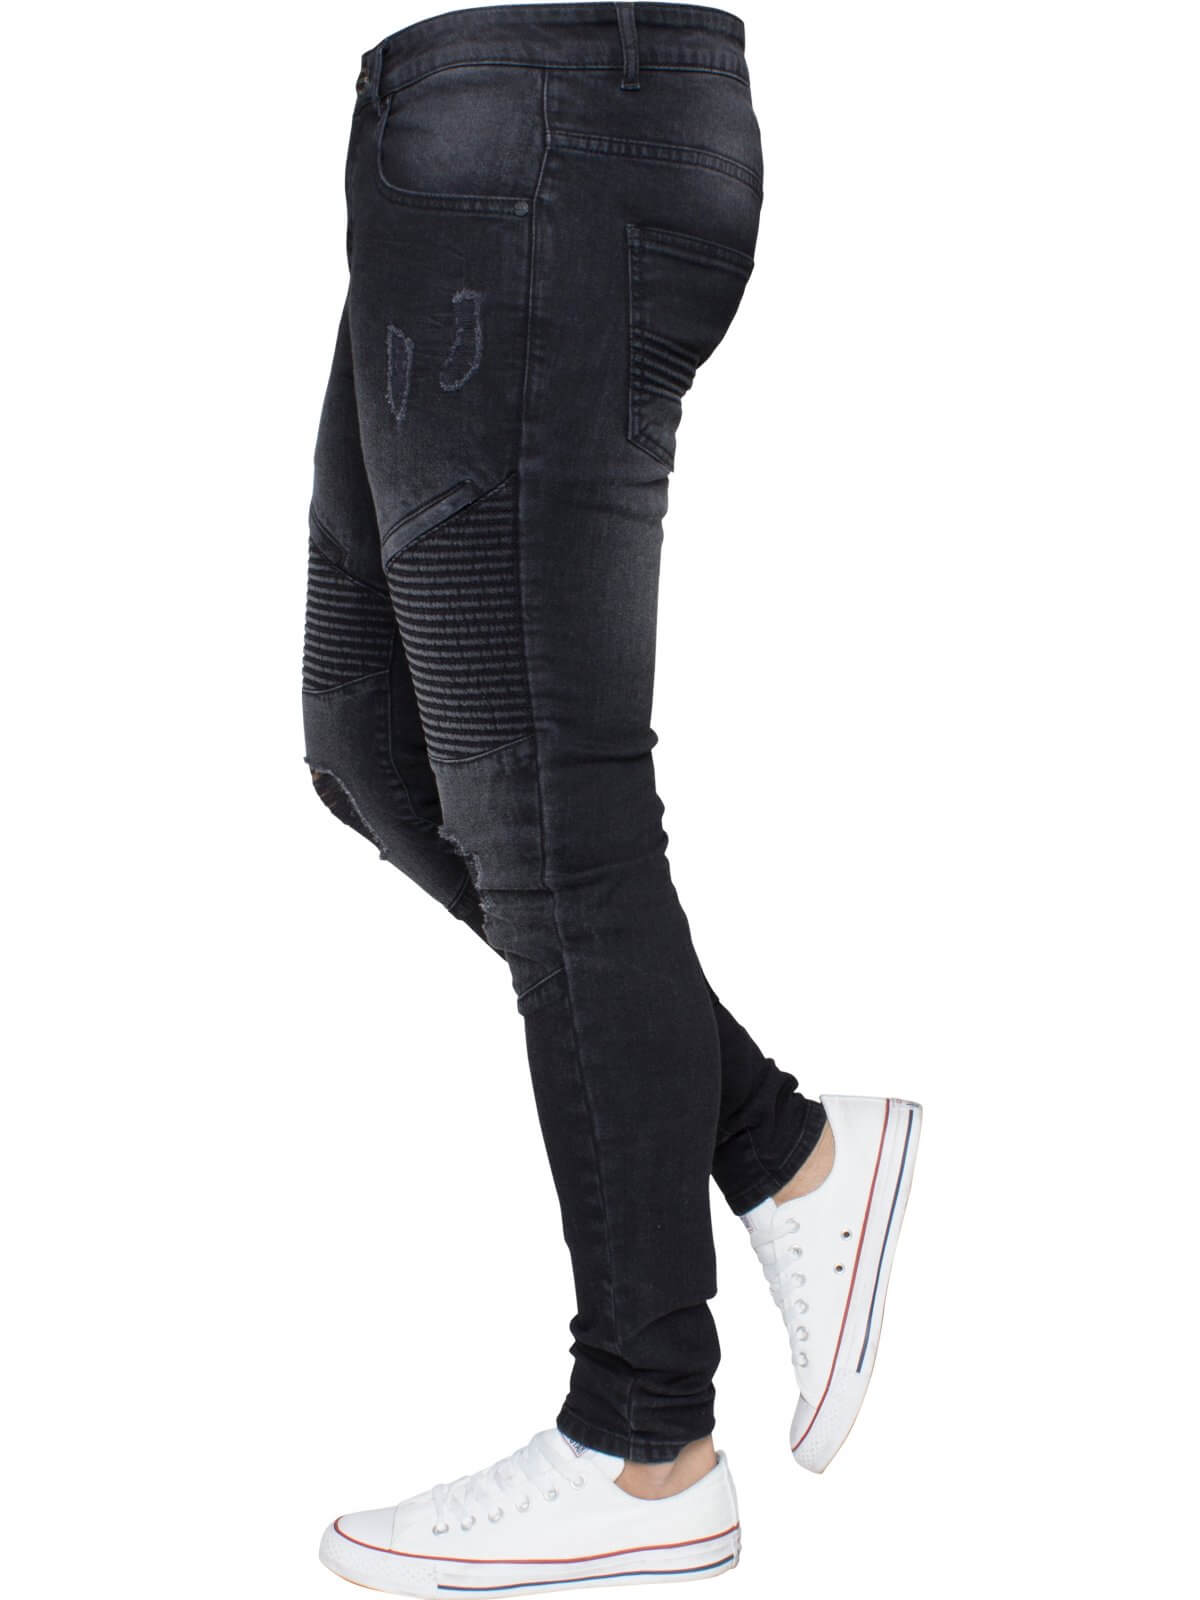 Mens Black Designer Ripped Biker Jeans Super Skinny Stretch Denim | Enzo Designer Menswear